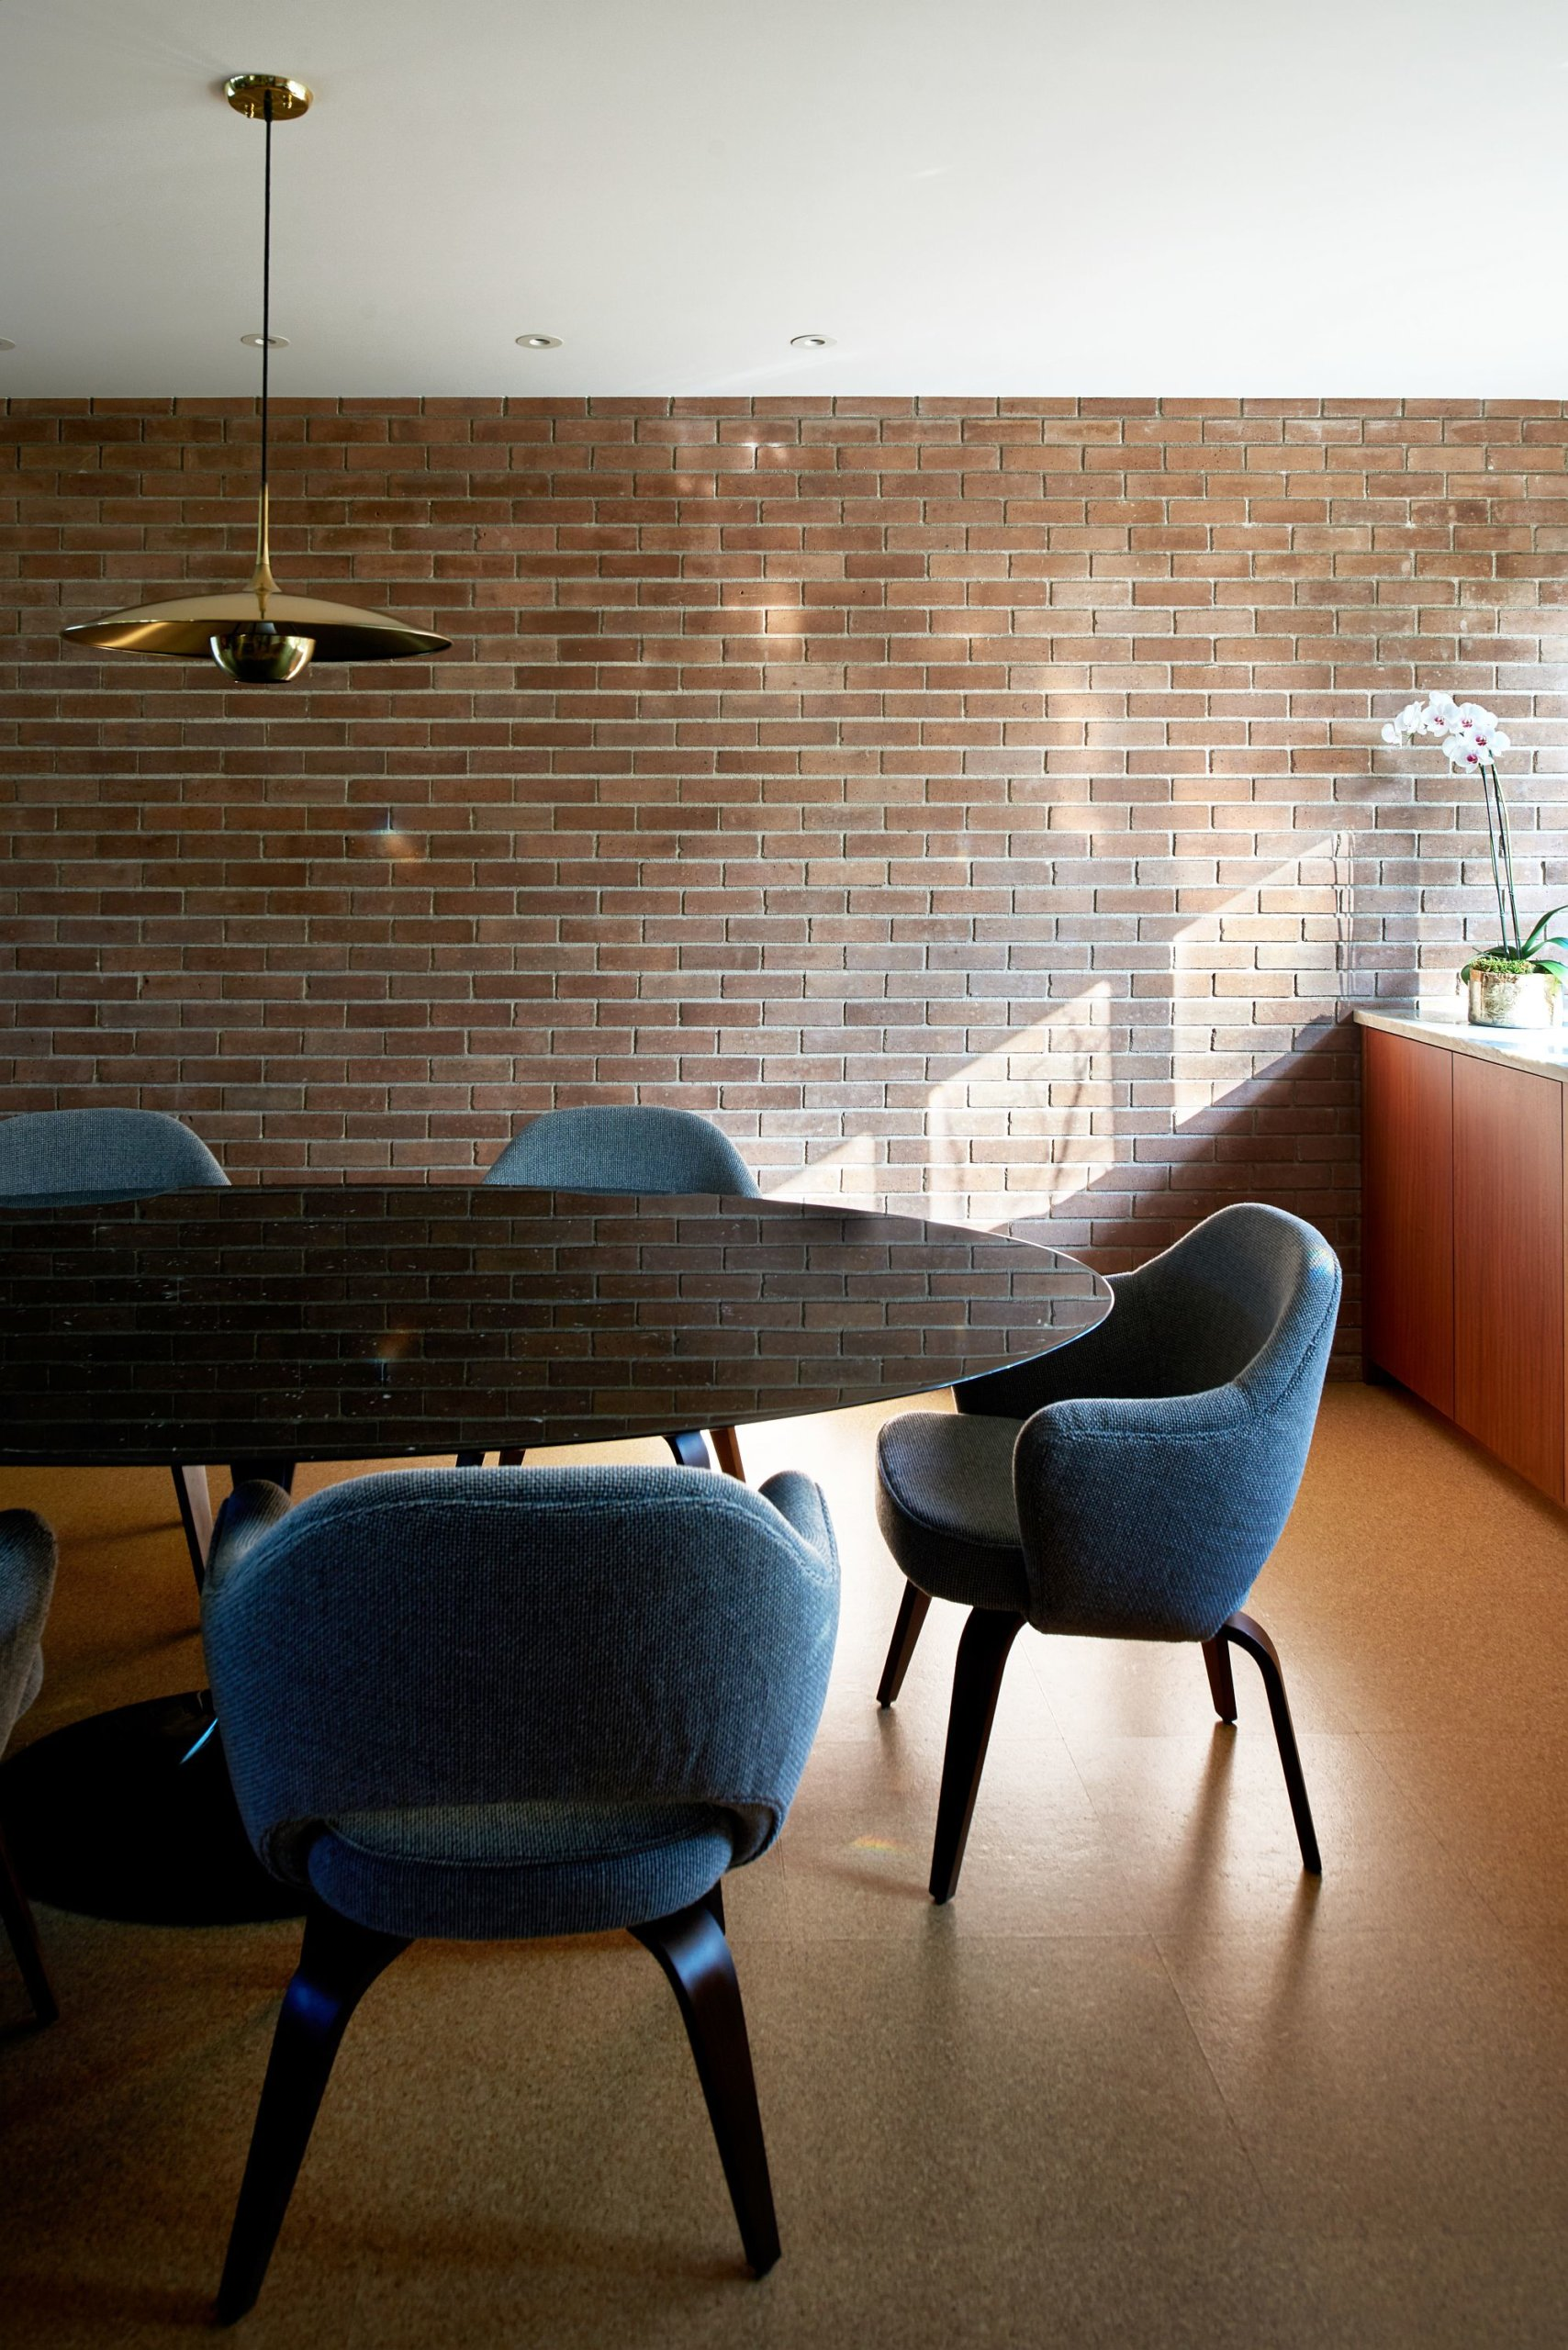 Brick walls give a modern-classic appeal to the light-filled dining room